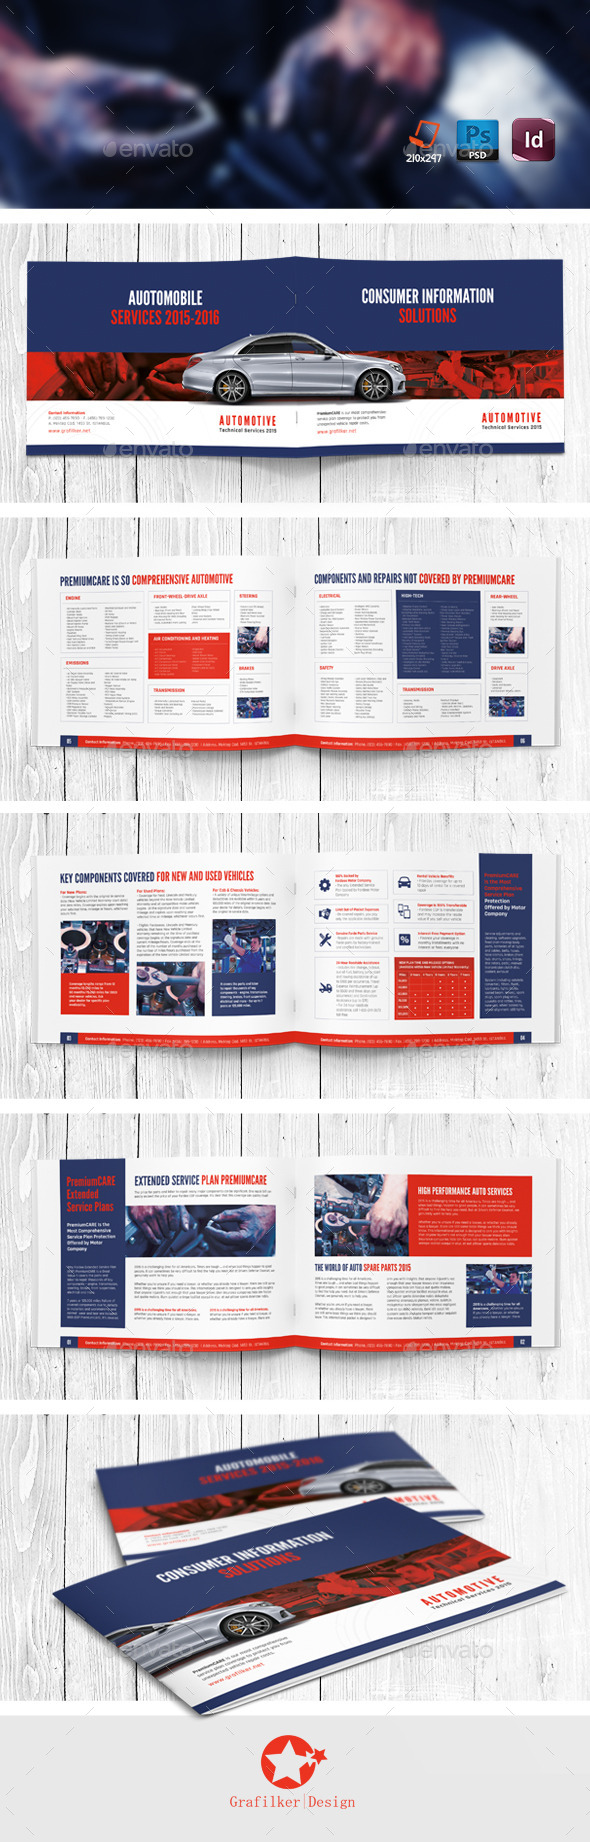 GraphicRiver Automobile Service Brochure Templates 11137199